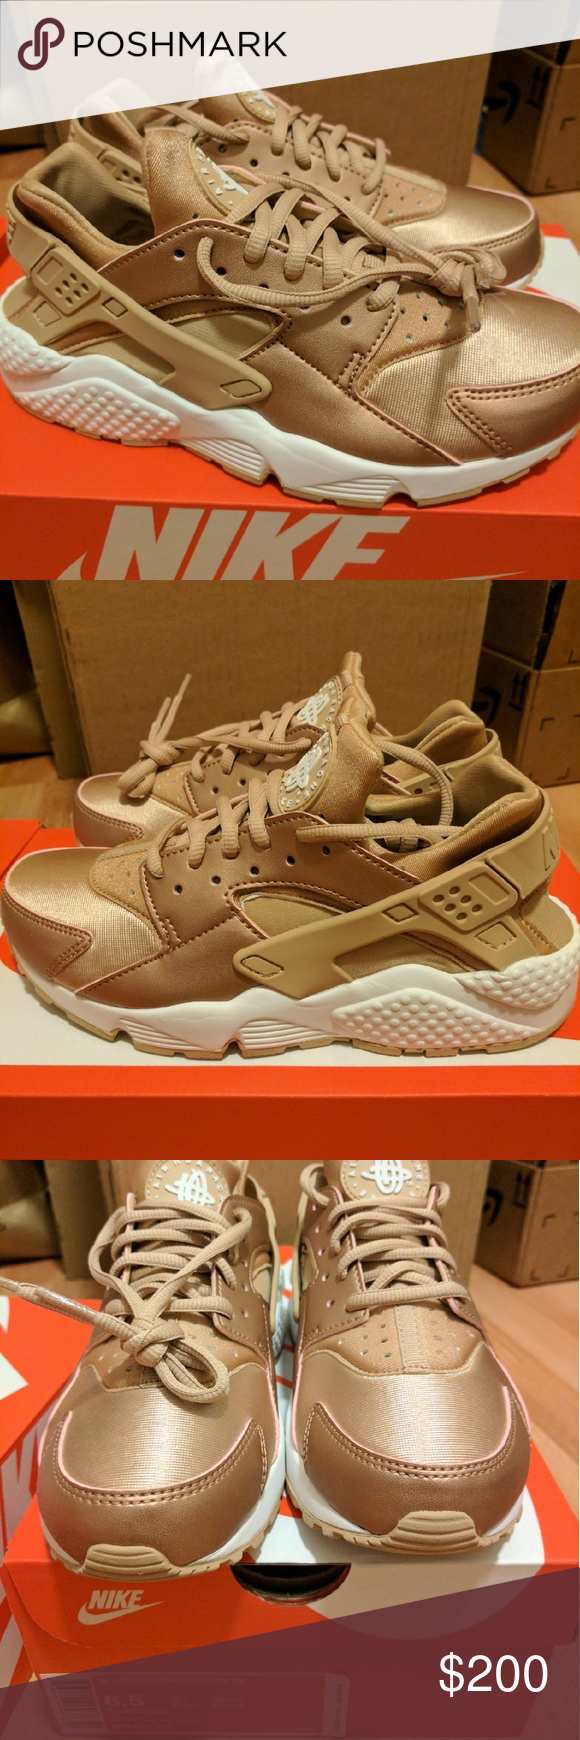 e7af10976394 ... switzerland new nike huarache se rose gold limited edition nike women air  huarache run se limited